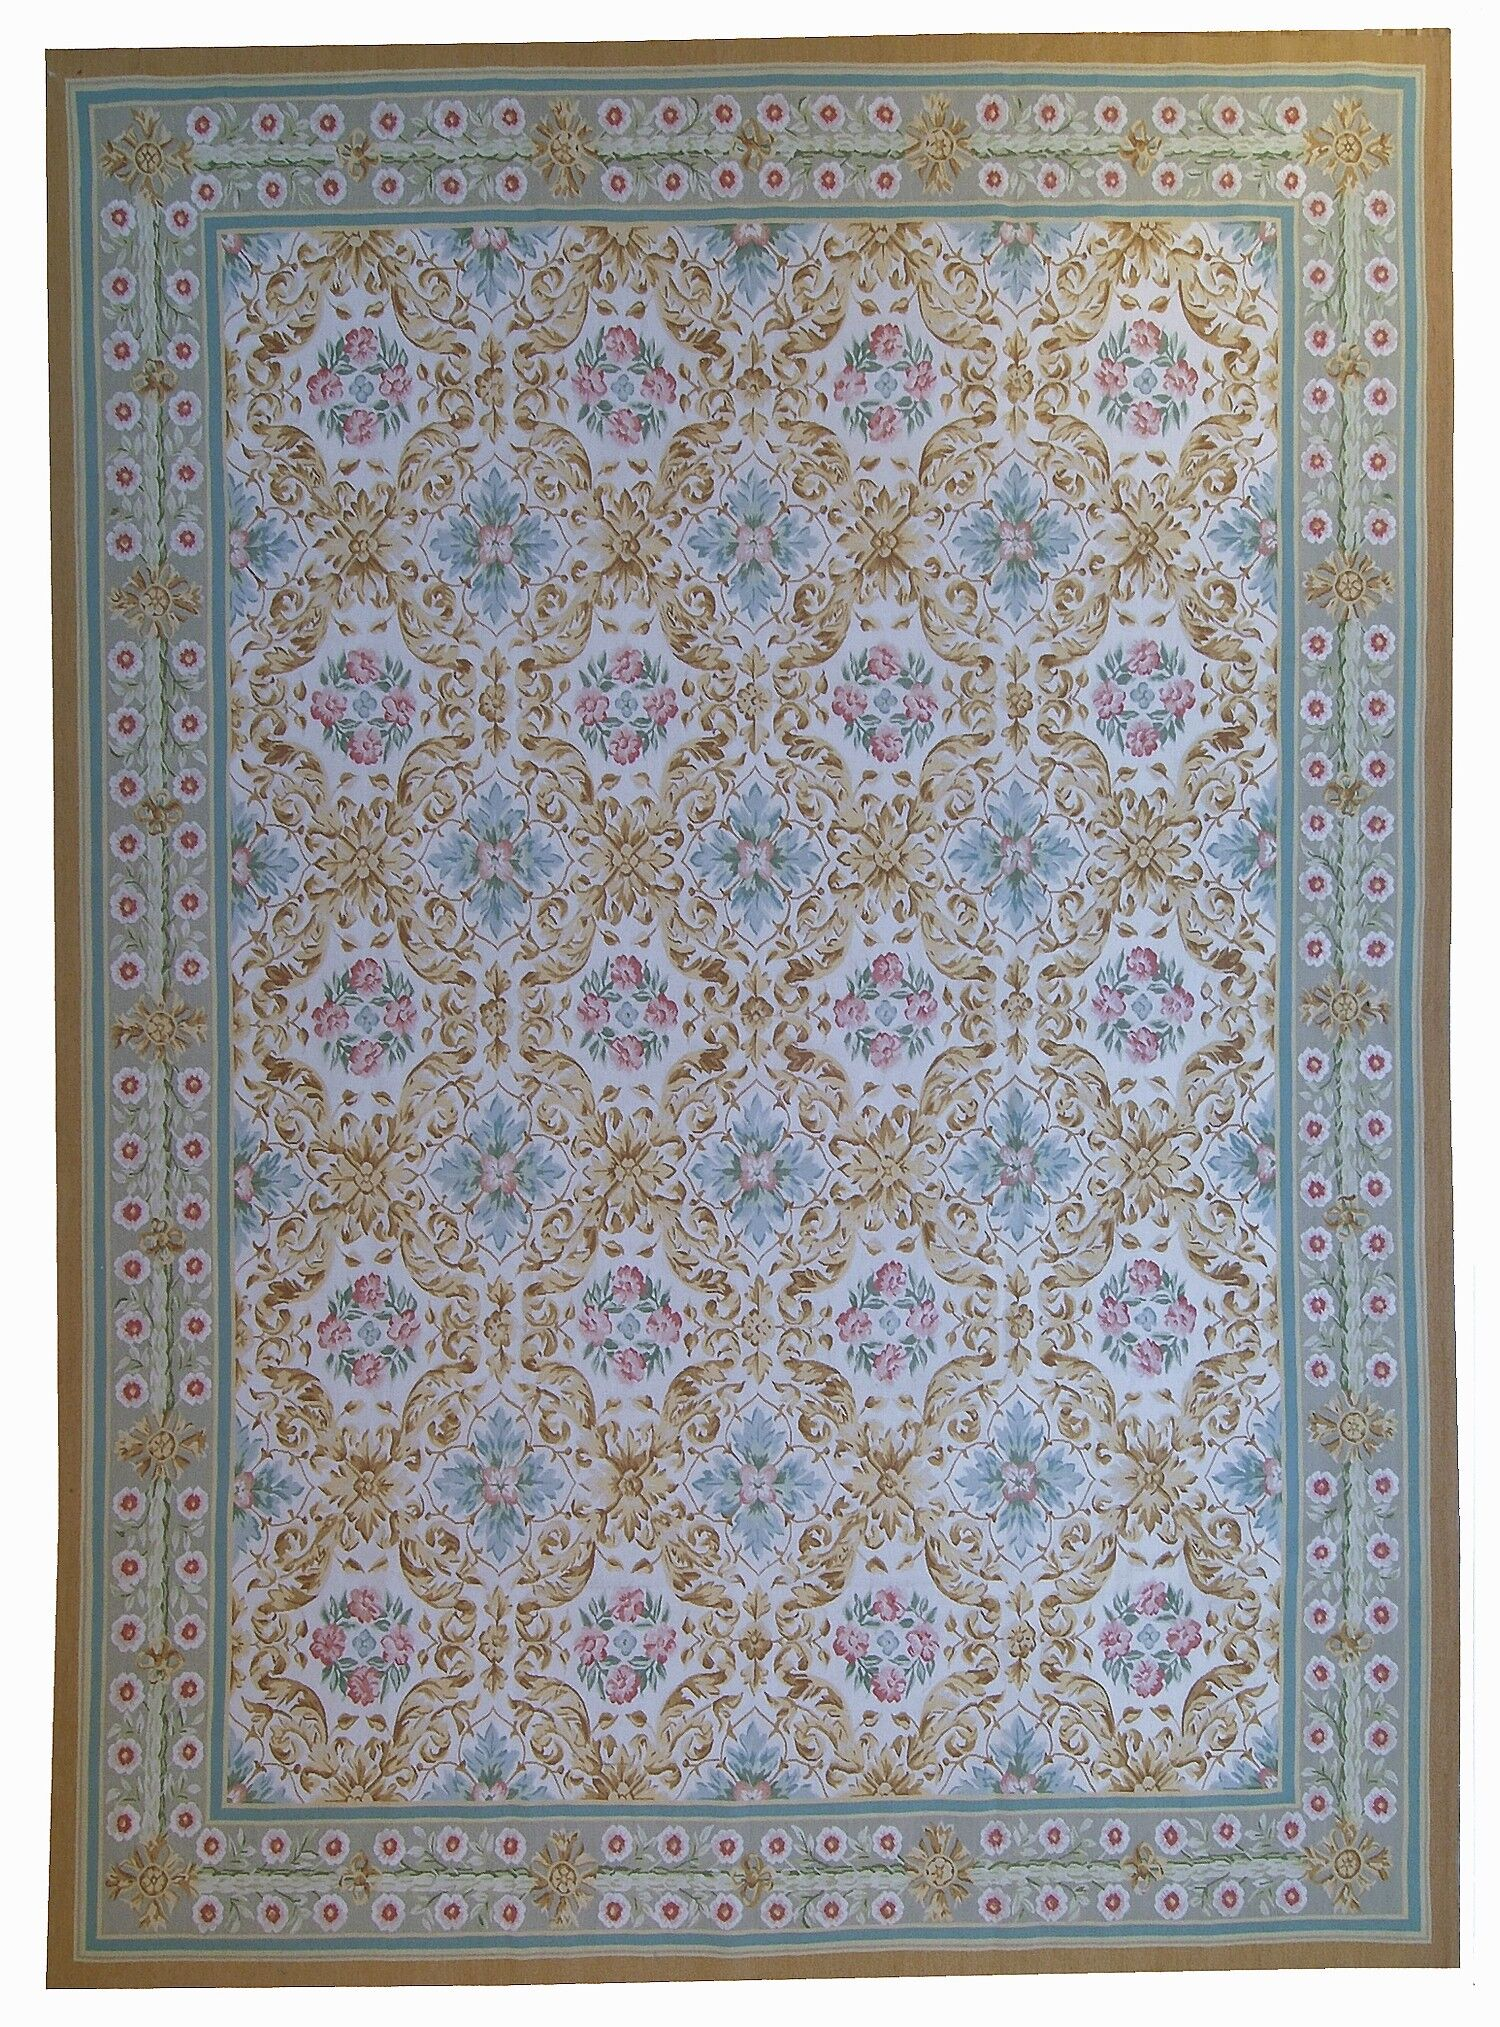 One-of-a-Kind Aubusson Hand Woven Wool Beige/Green Area Rug Rug Size: Rectangle 8'10